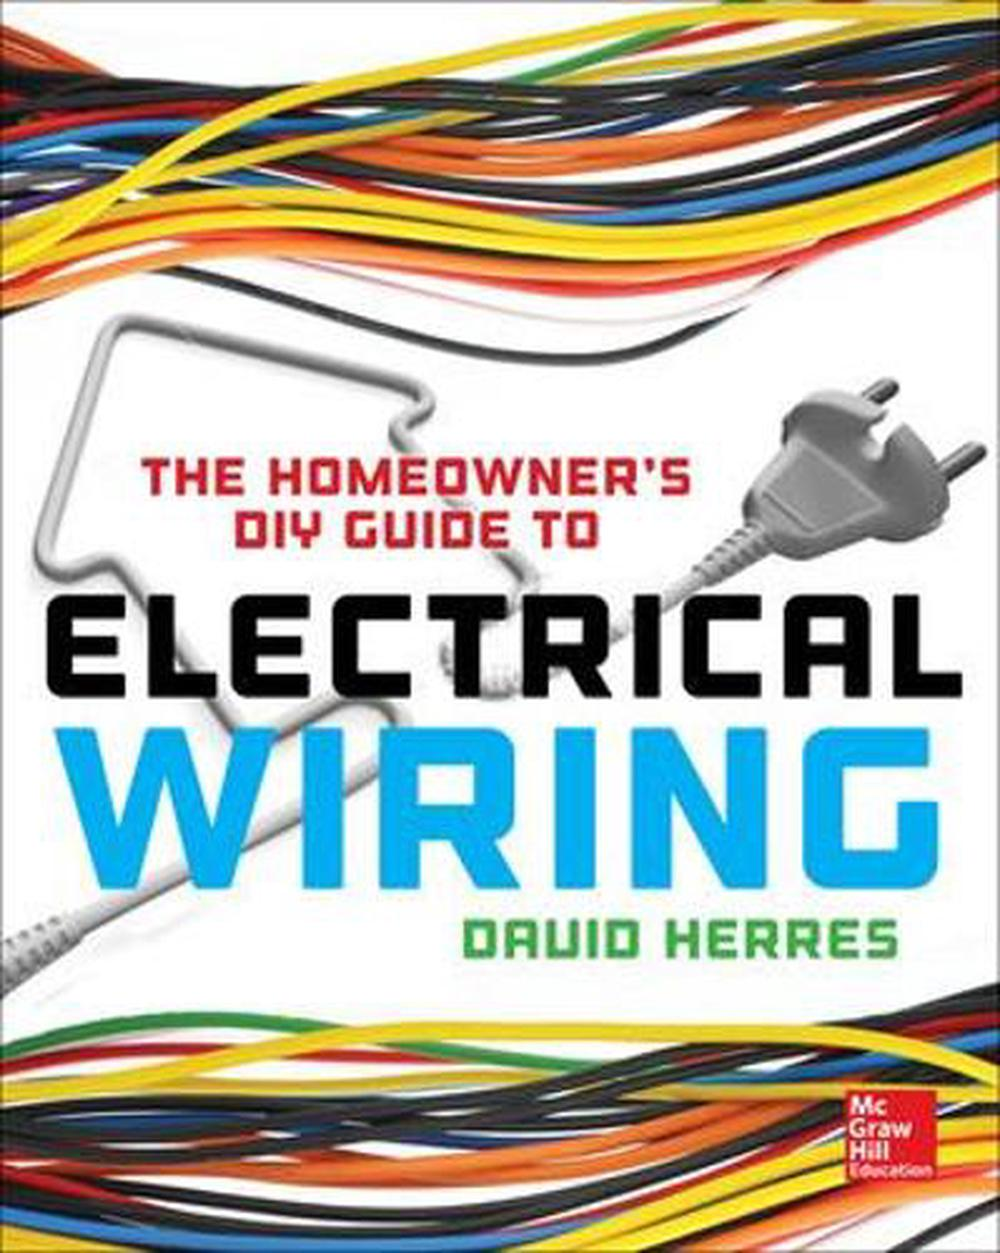 hight resolution of the homeowner s diy guide to electrical wiring by david herres paperback 9780071844758 buy online at the nile